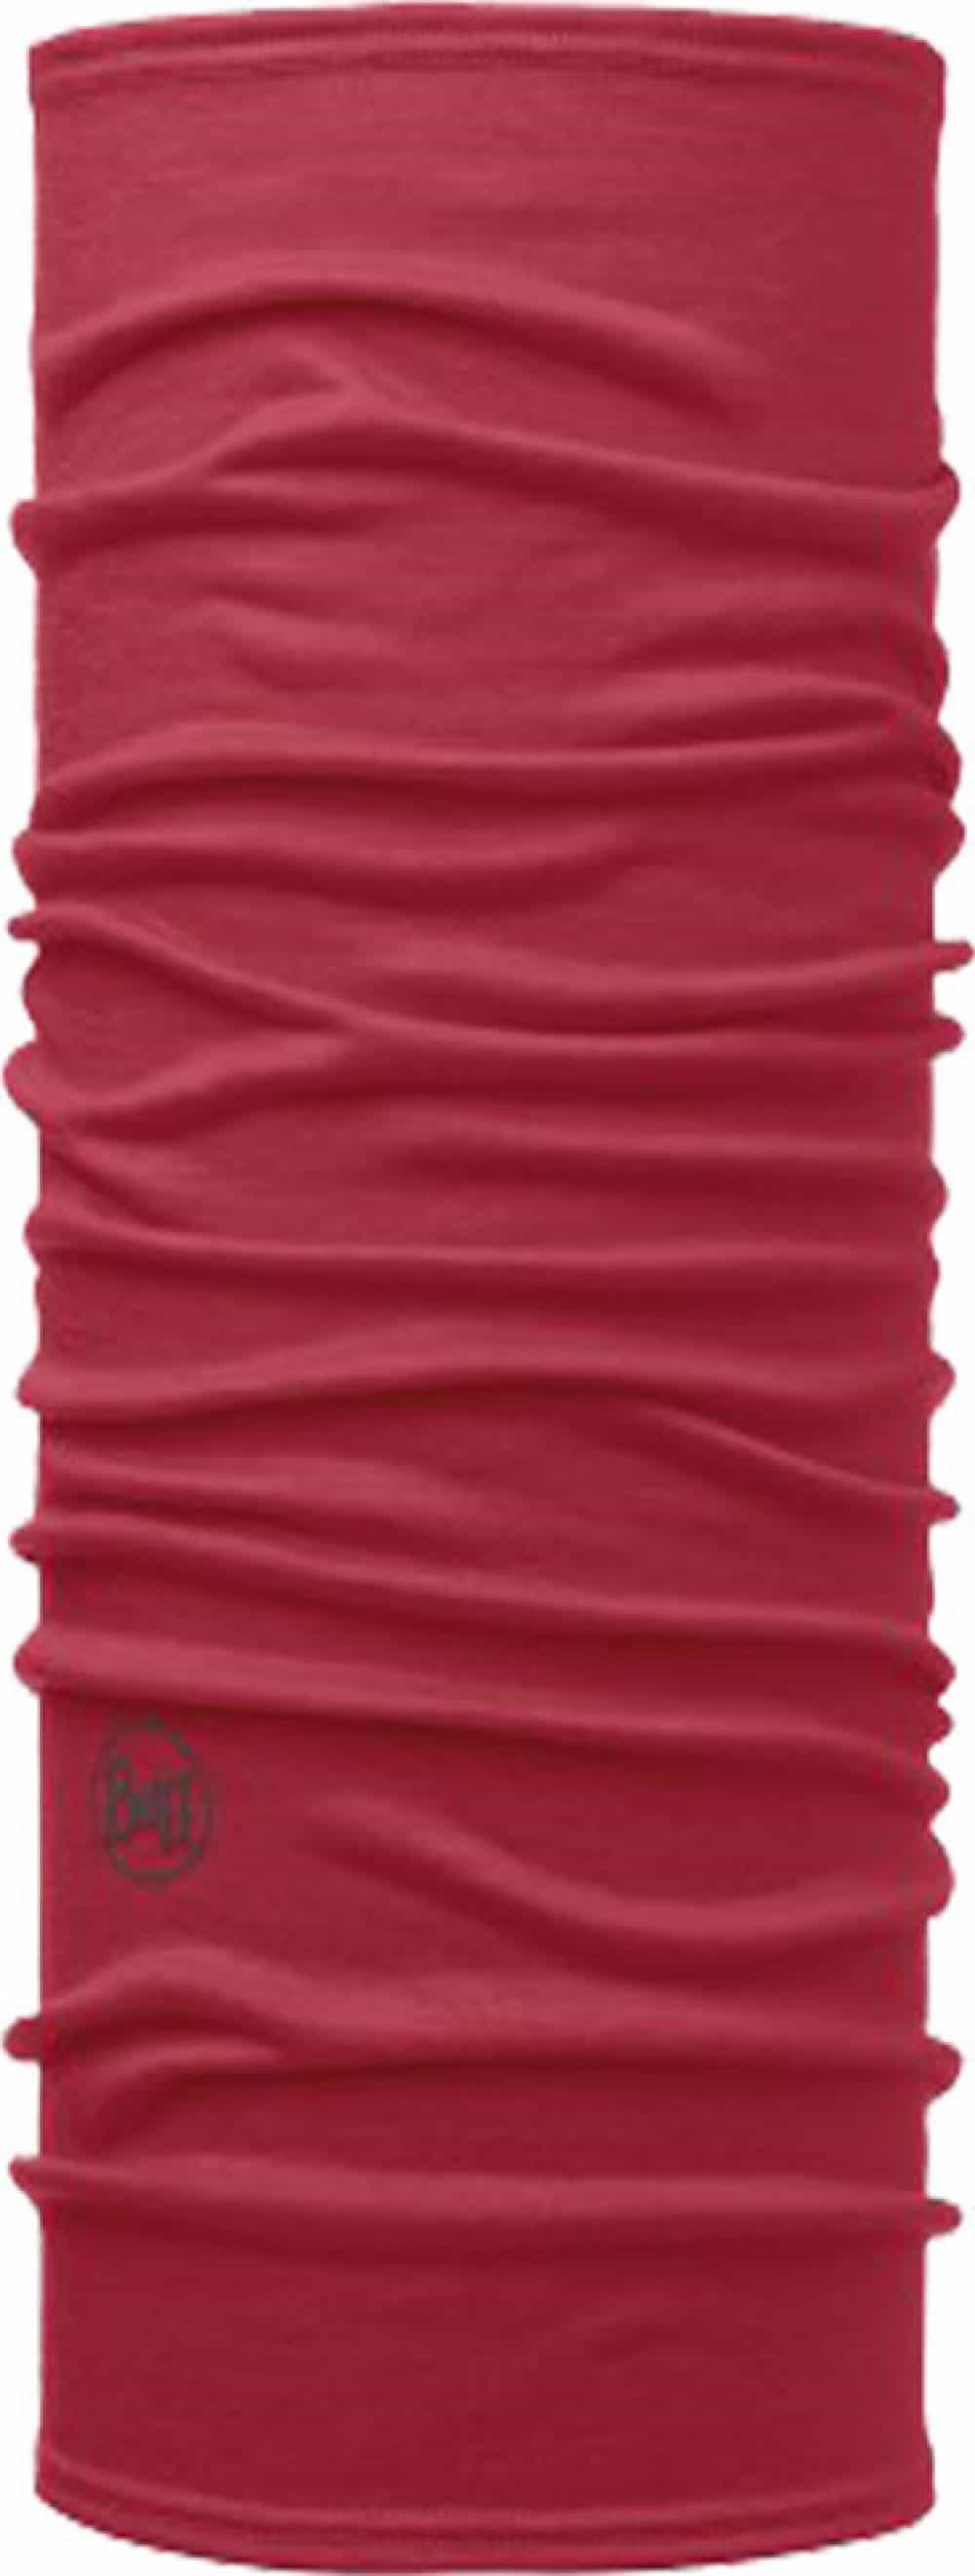 "Studio photo of the Wool Buff® design ""Red Scarlet"". Source: buff.eu"